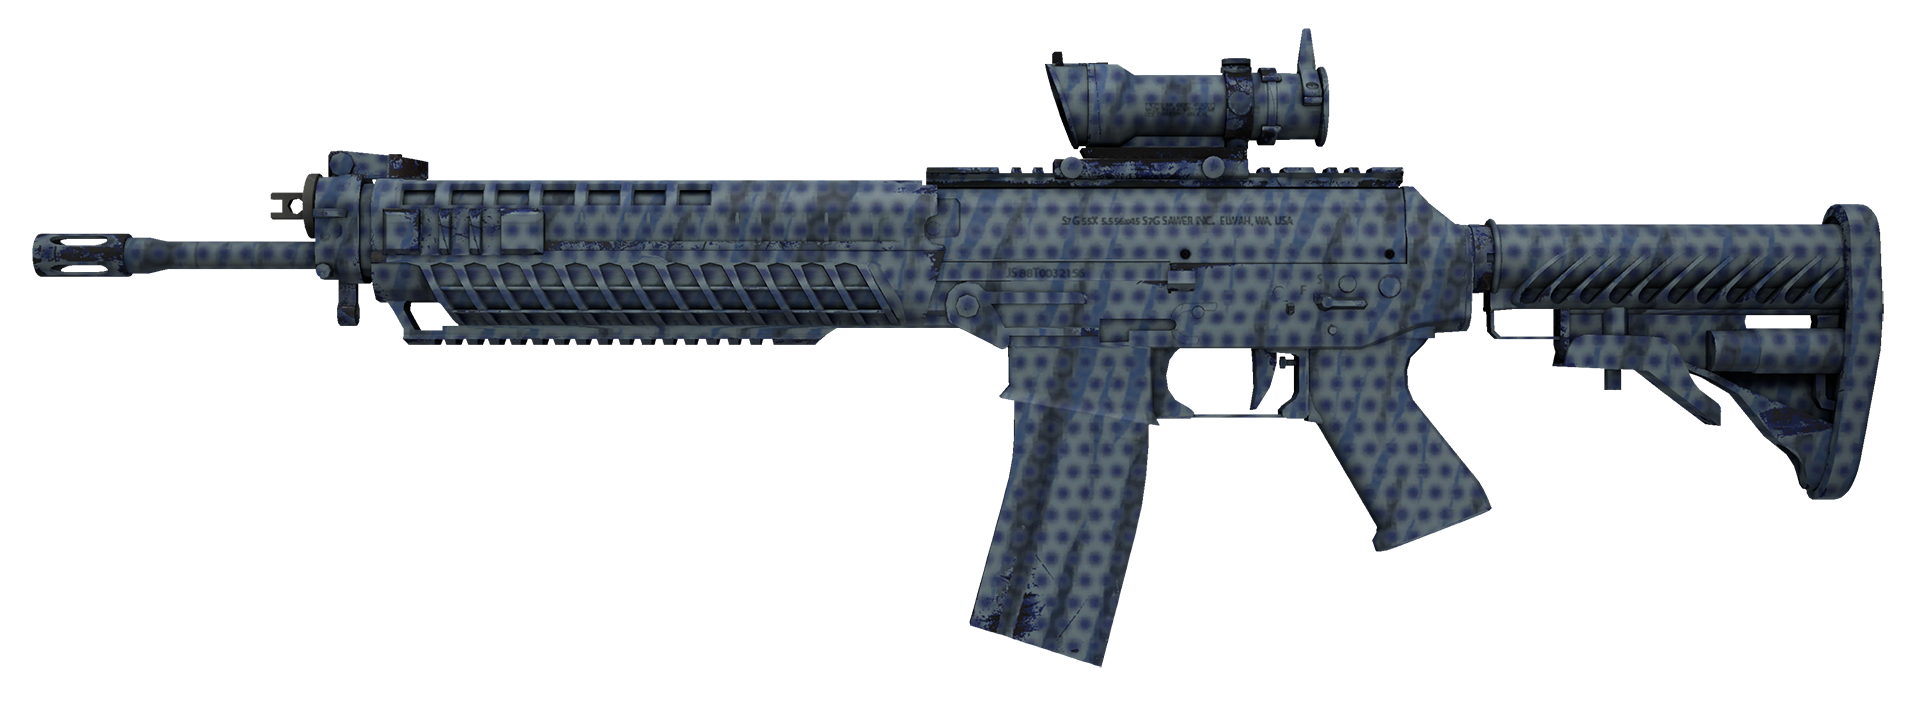 SG 553 Waves Perforated Large Rendering